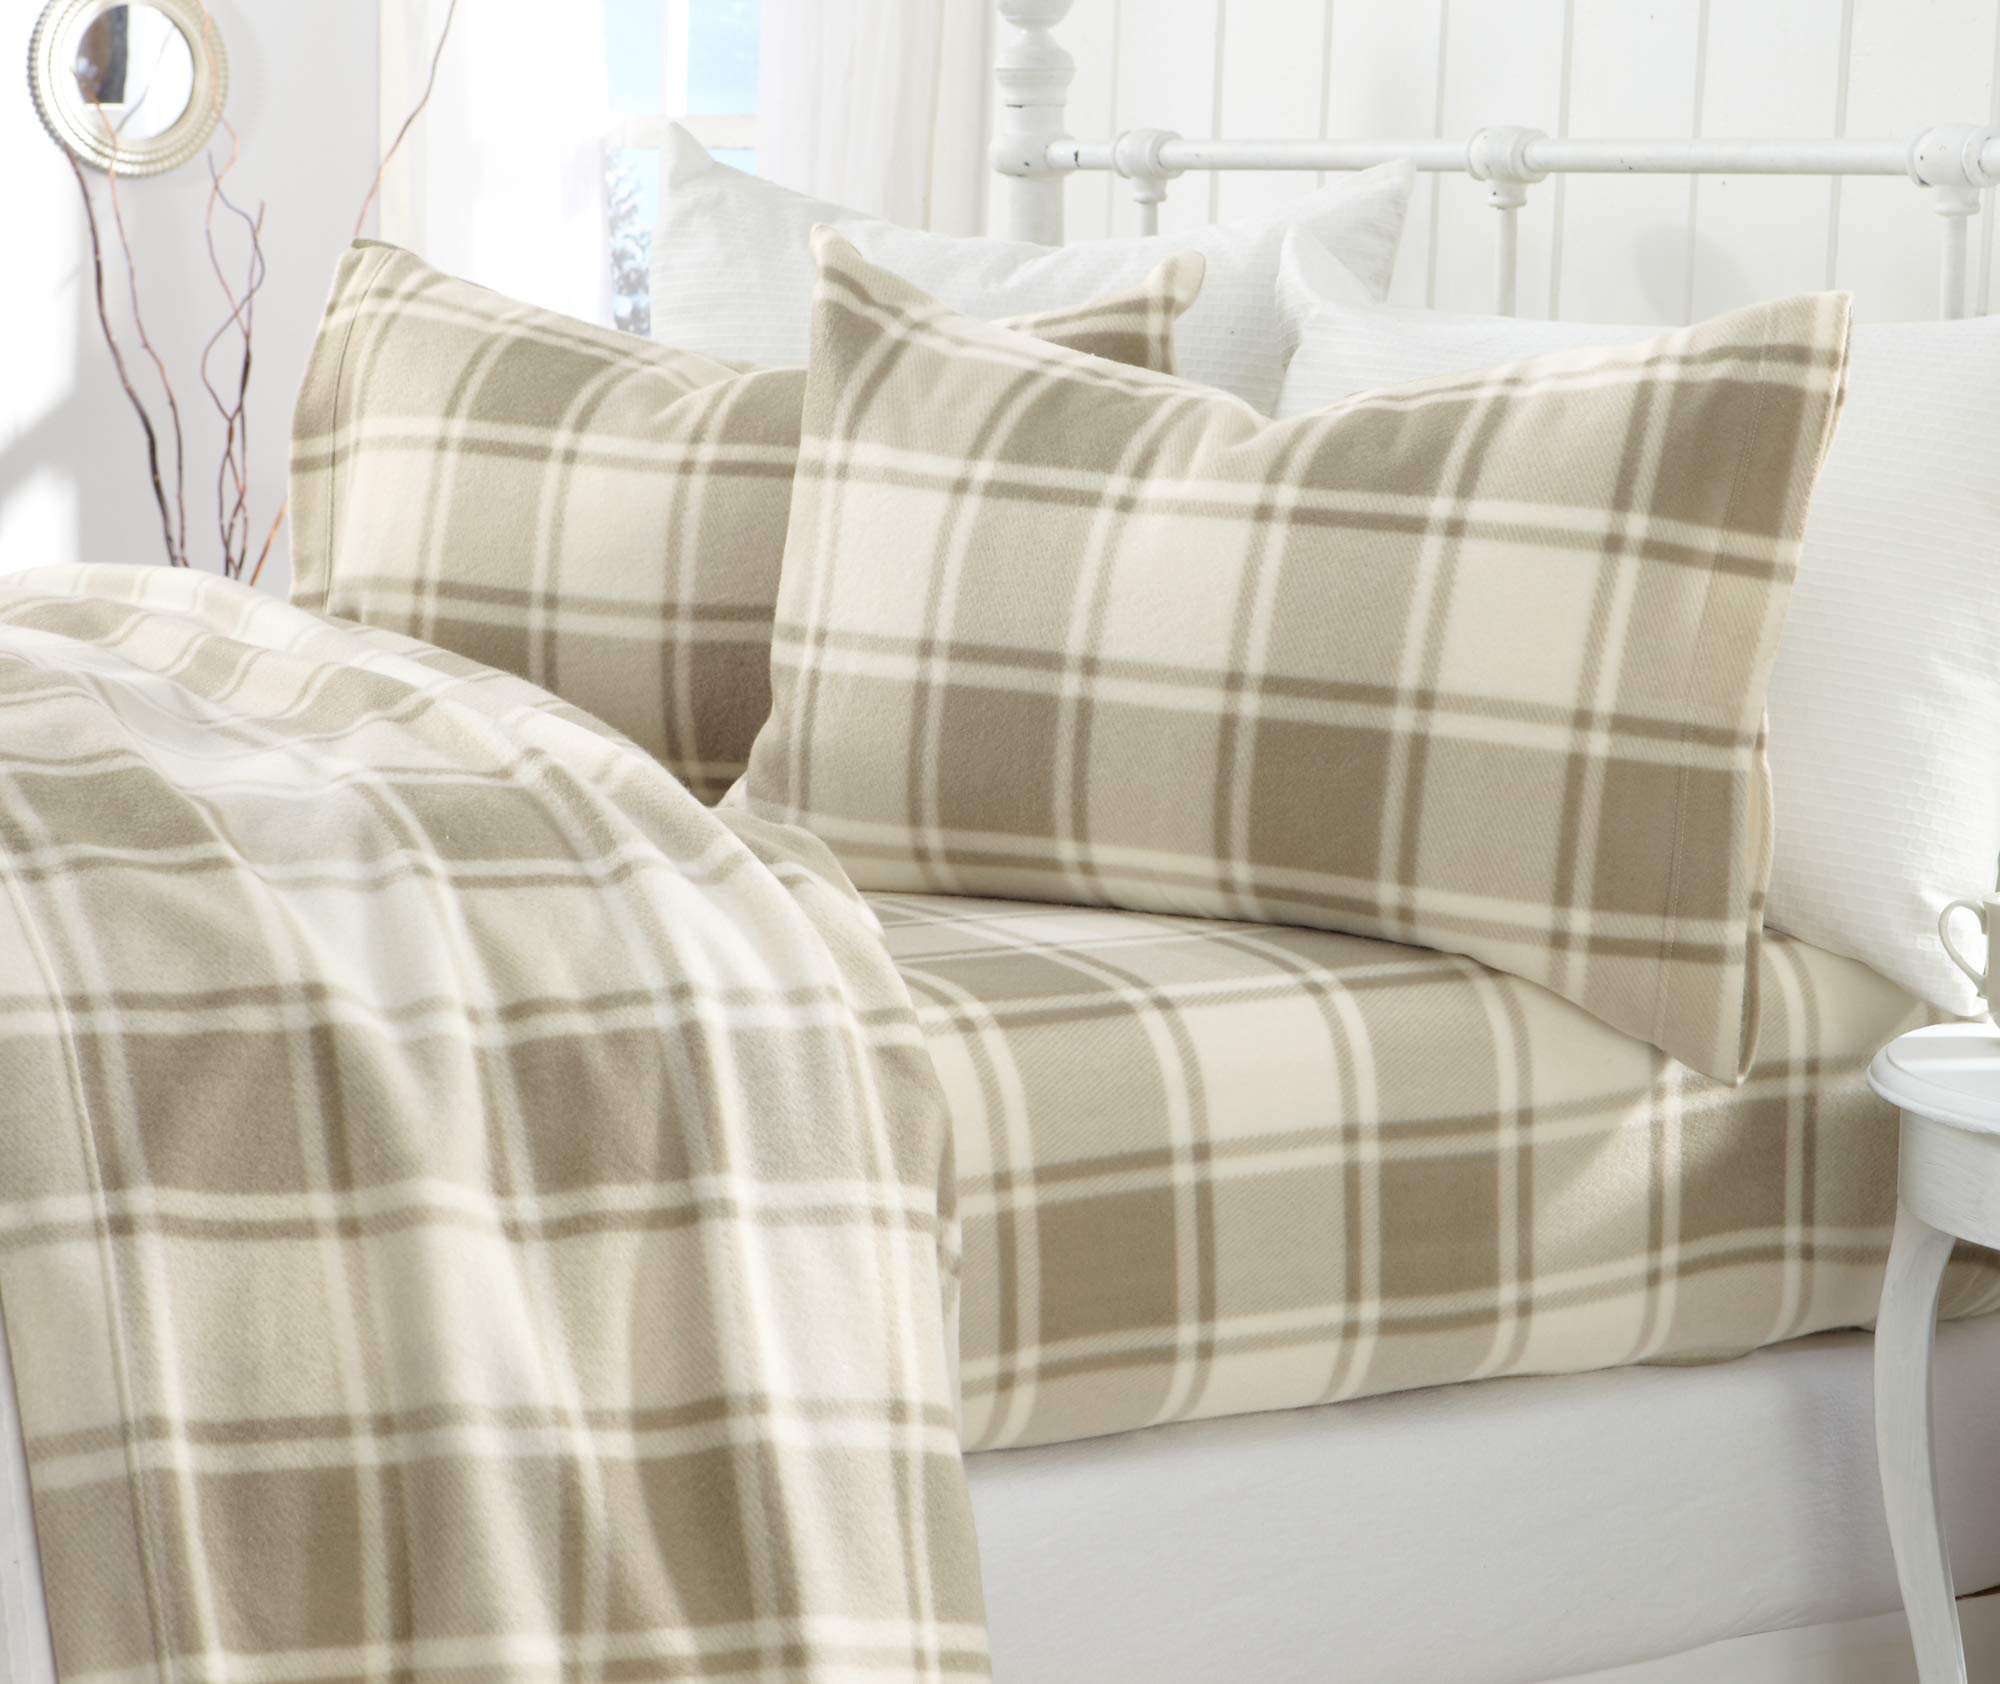 Great Bay Home Super Soft Extra Plush Plaid Polar Fleece Sheet Set. Cozy, Warm, Durable, Smooth, Breathable Winter Sheets with Plaid Pattern. Dara Collection Brand. (Full, Taupe) by Great Bay Home (Image #5)